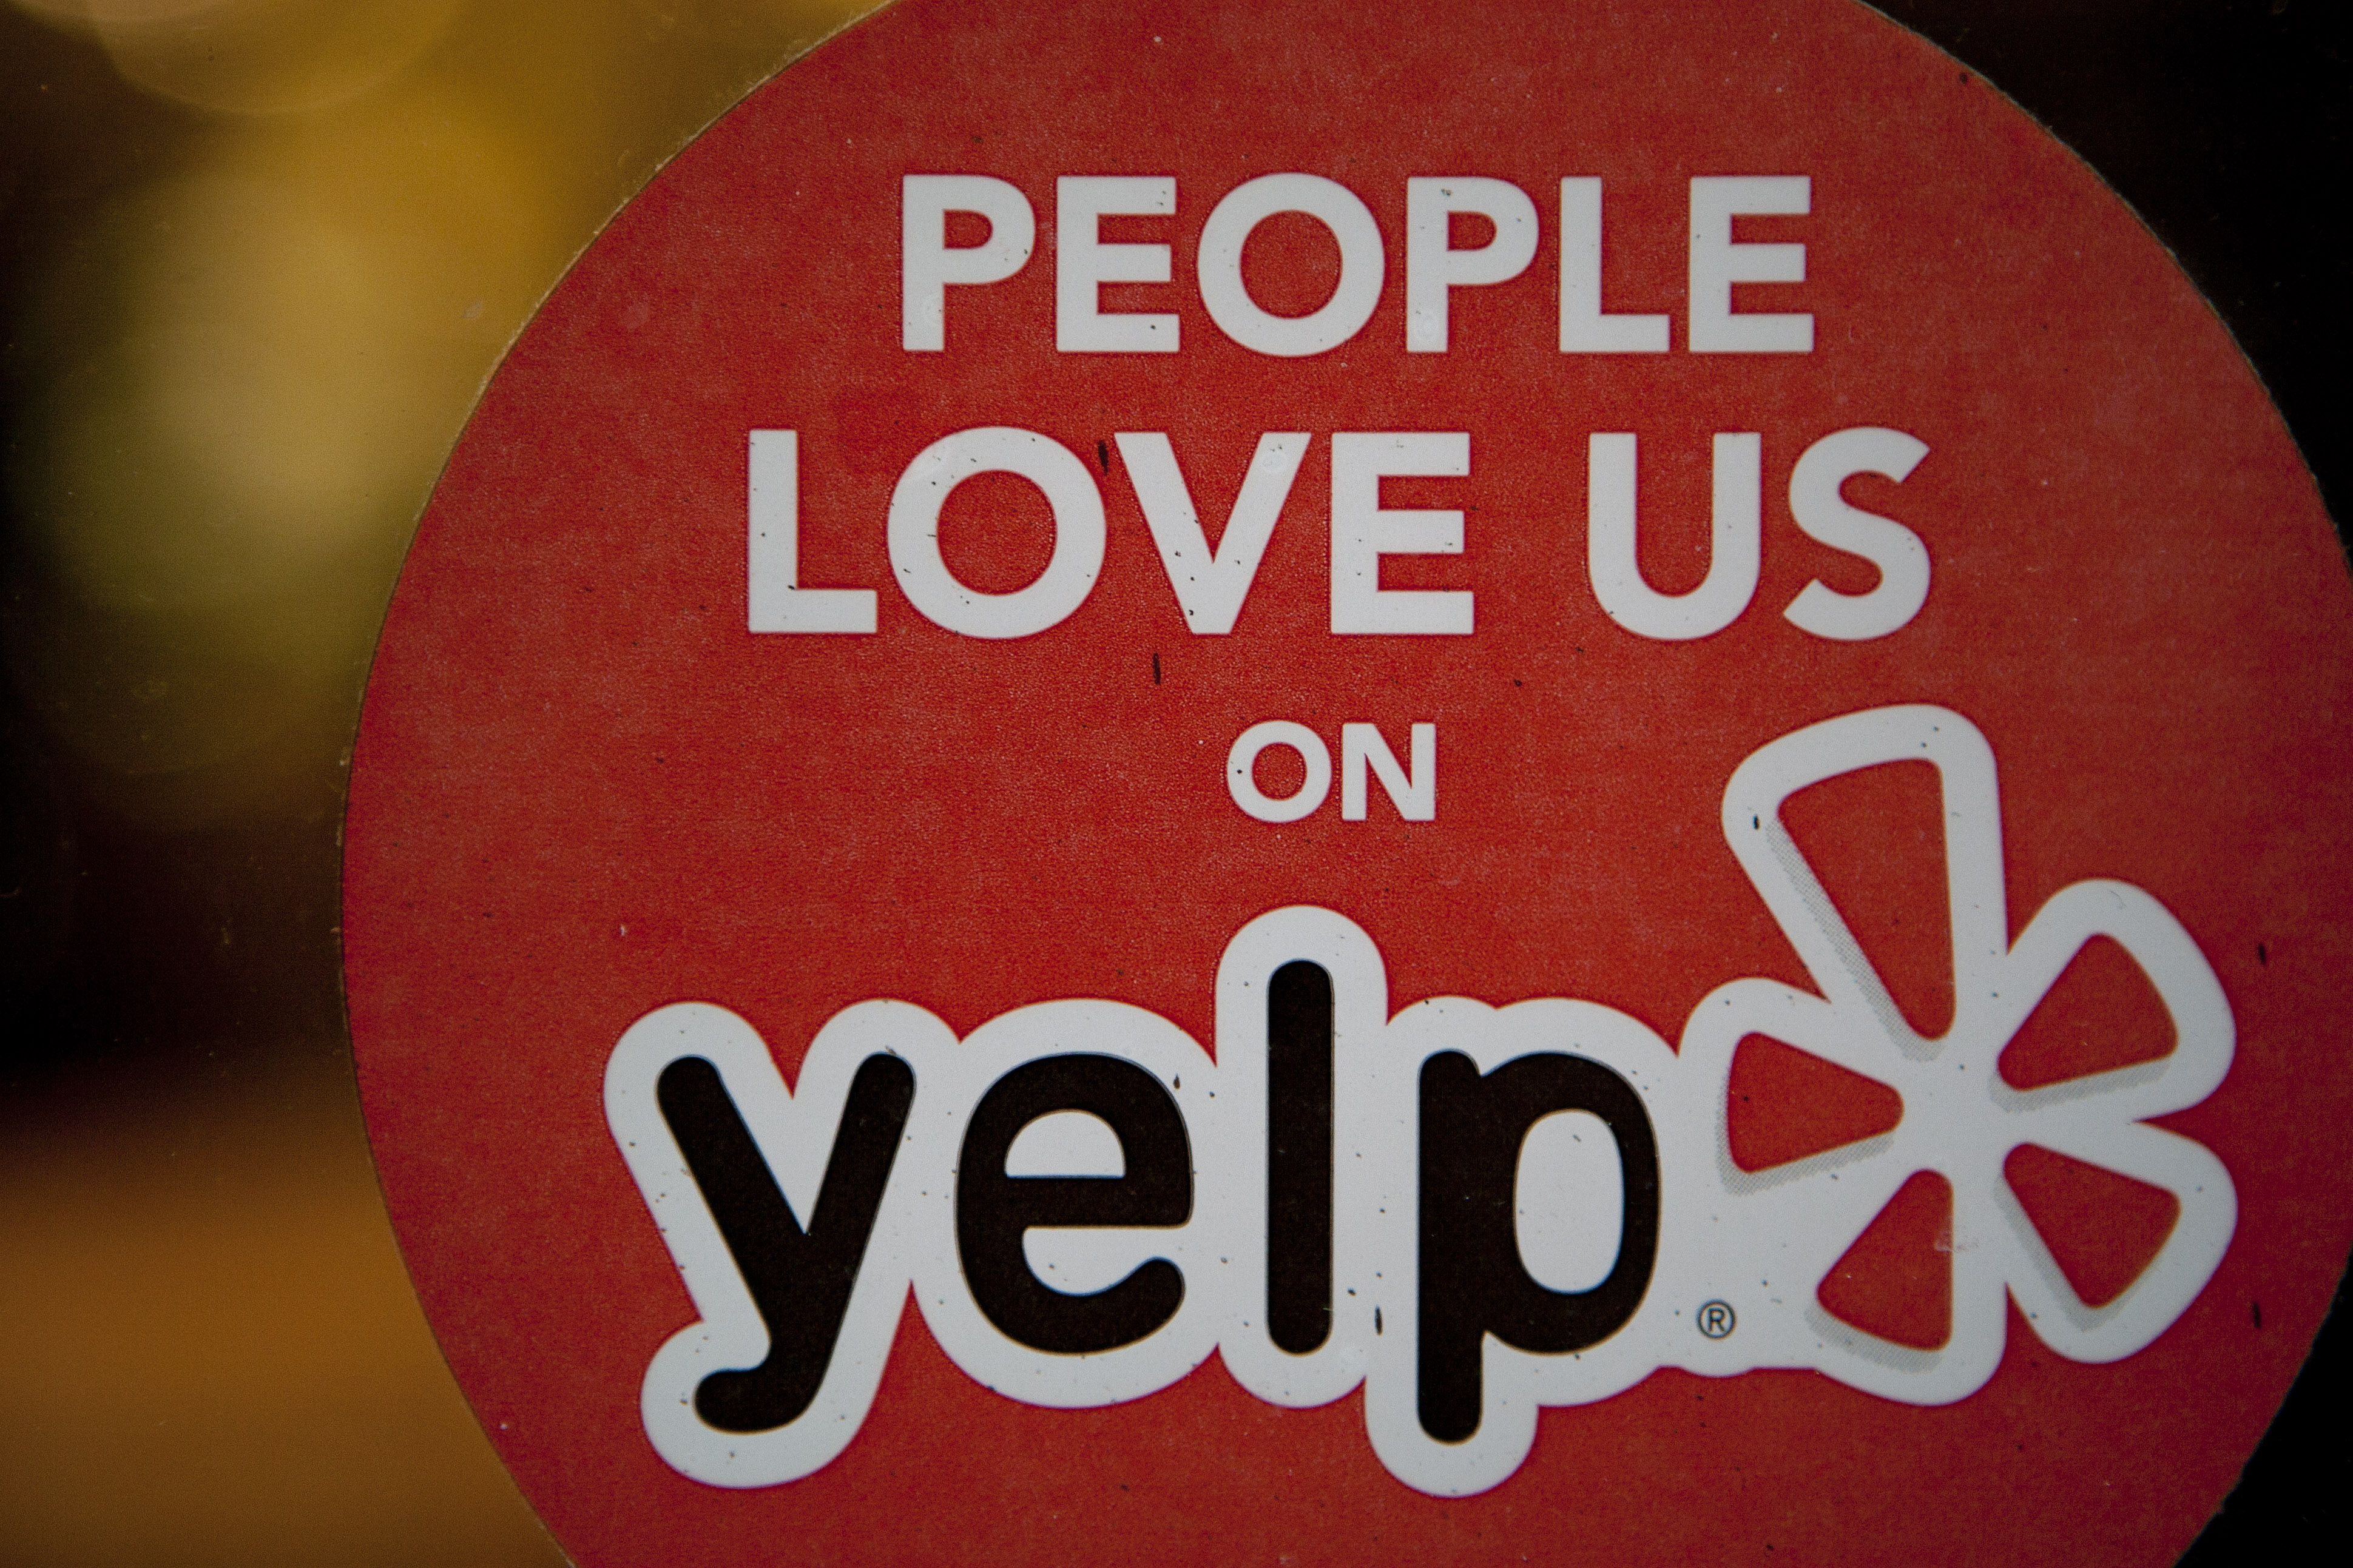 The Yelp logo is displayed in the window of a restaurant in New York on March 1, 2012.